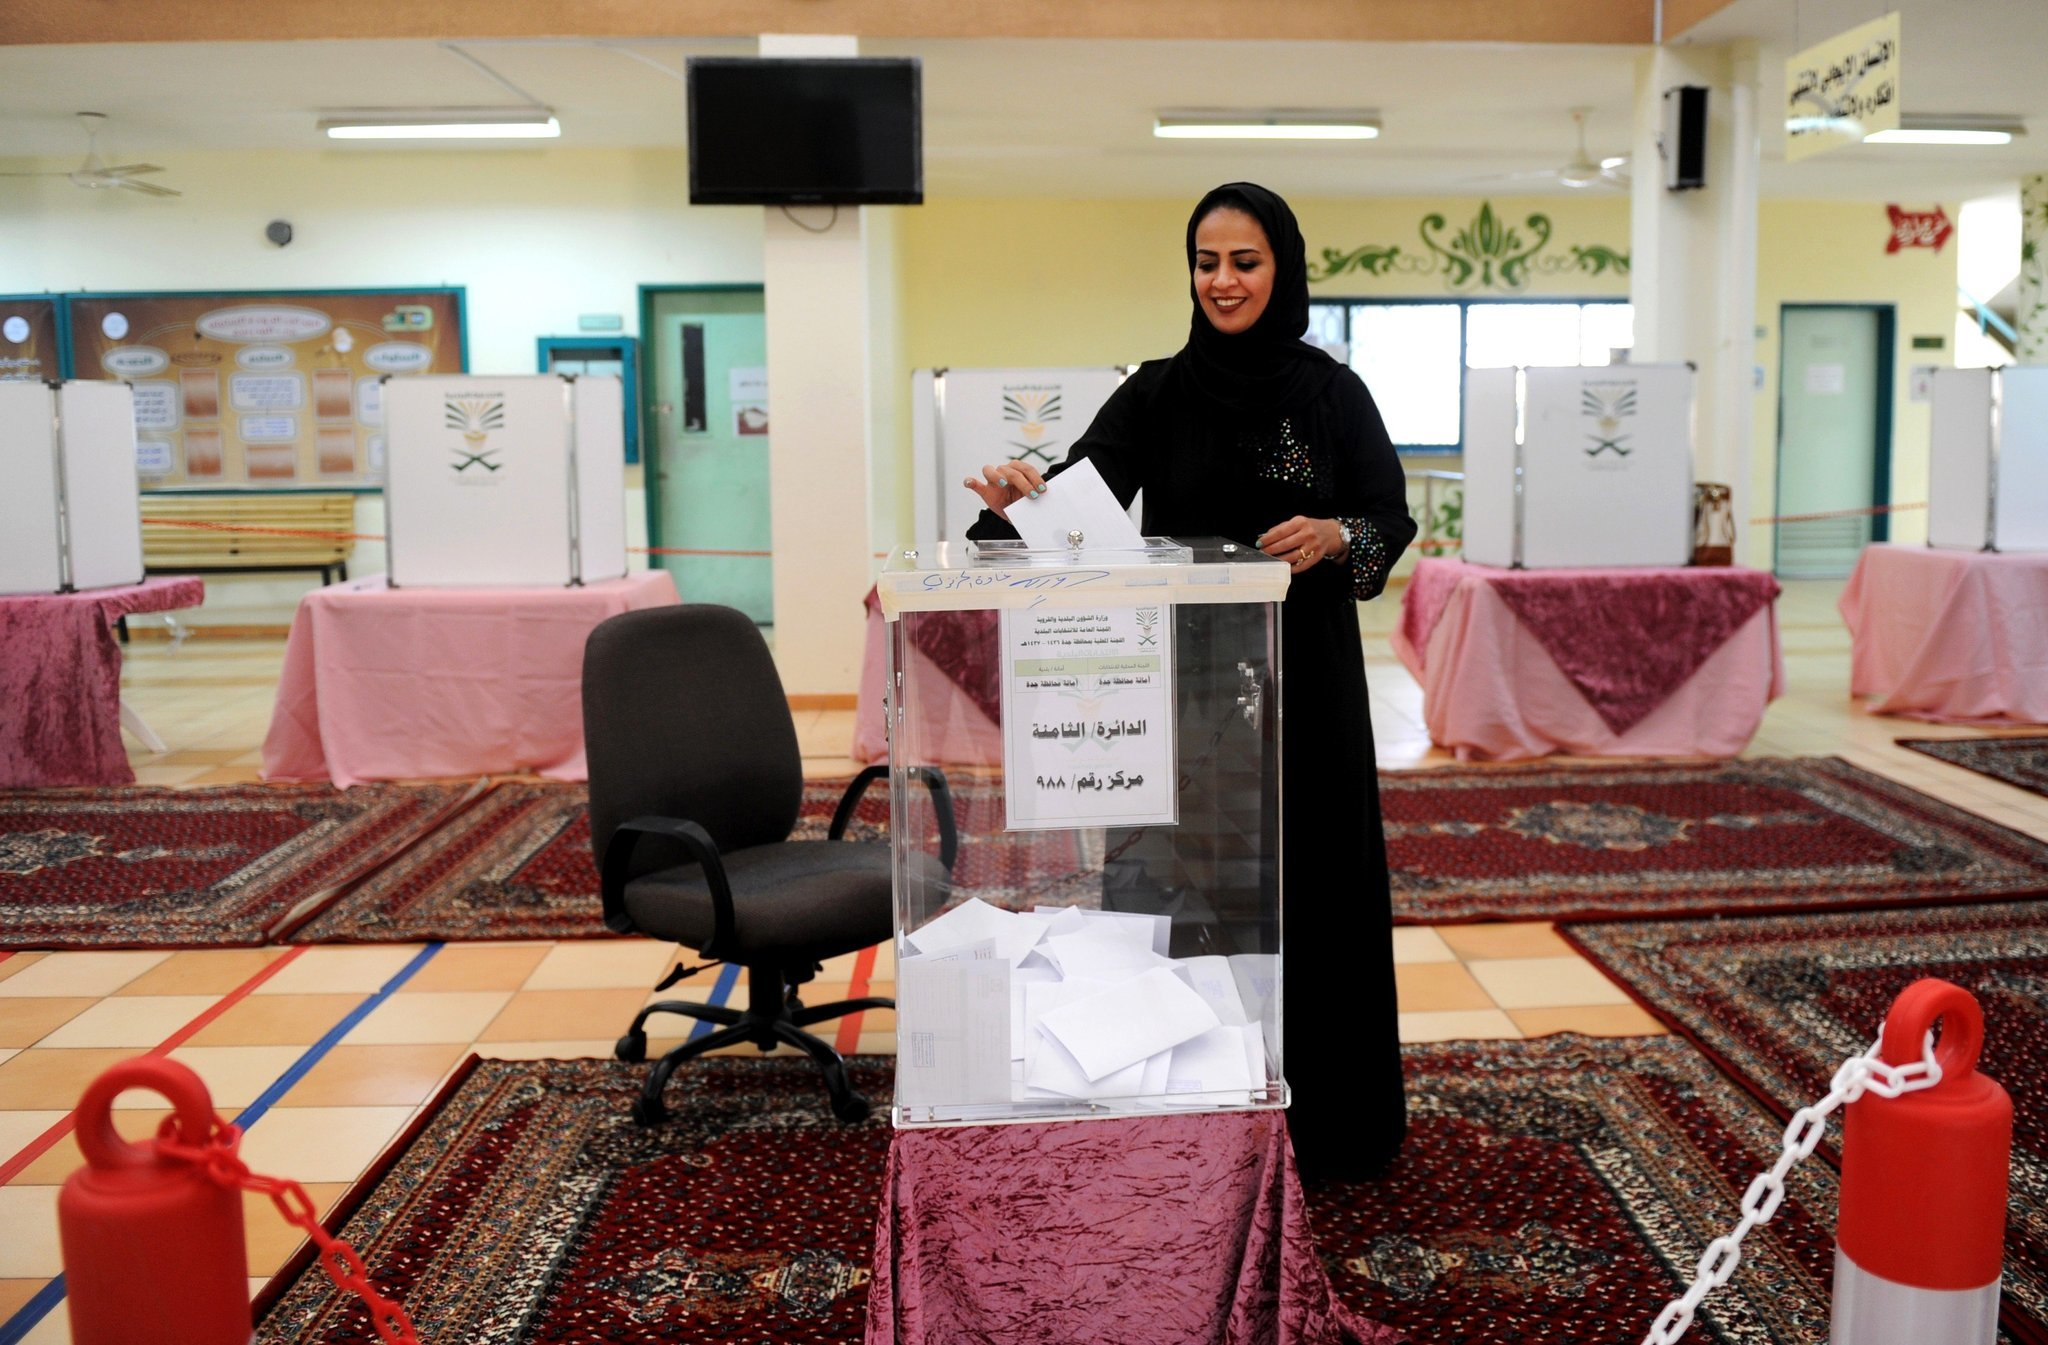 saudi arabia women vote for the first time in landmark election la times. Black Bedroom Furniture Sets. Home Design Ideas